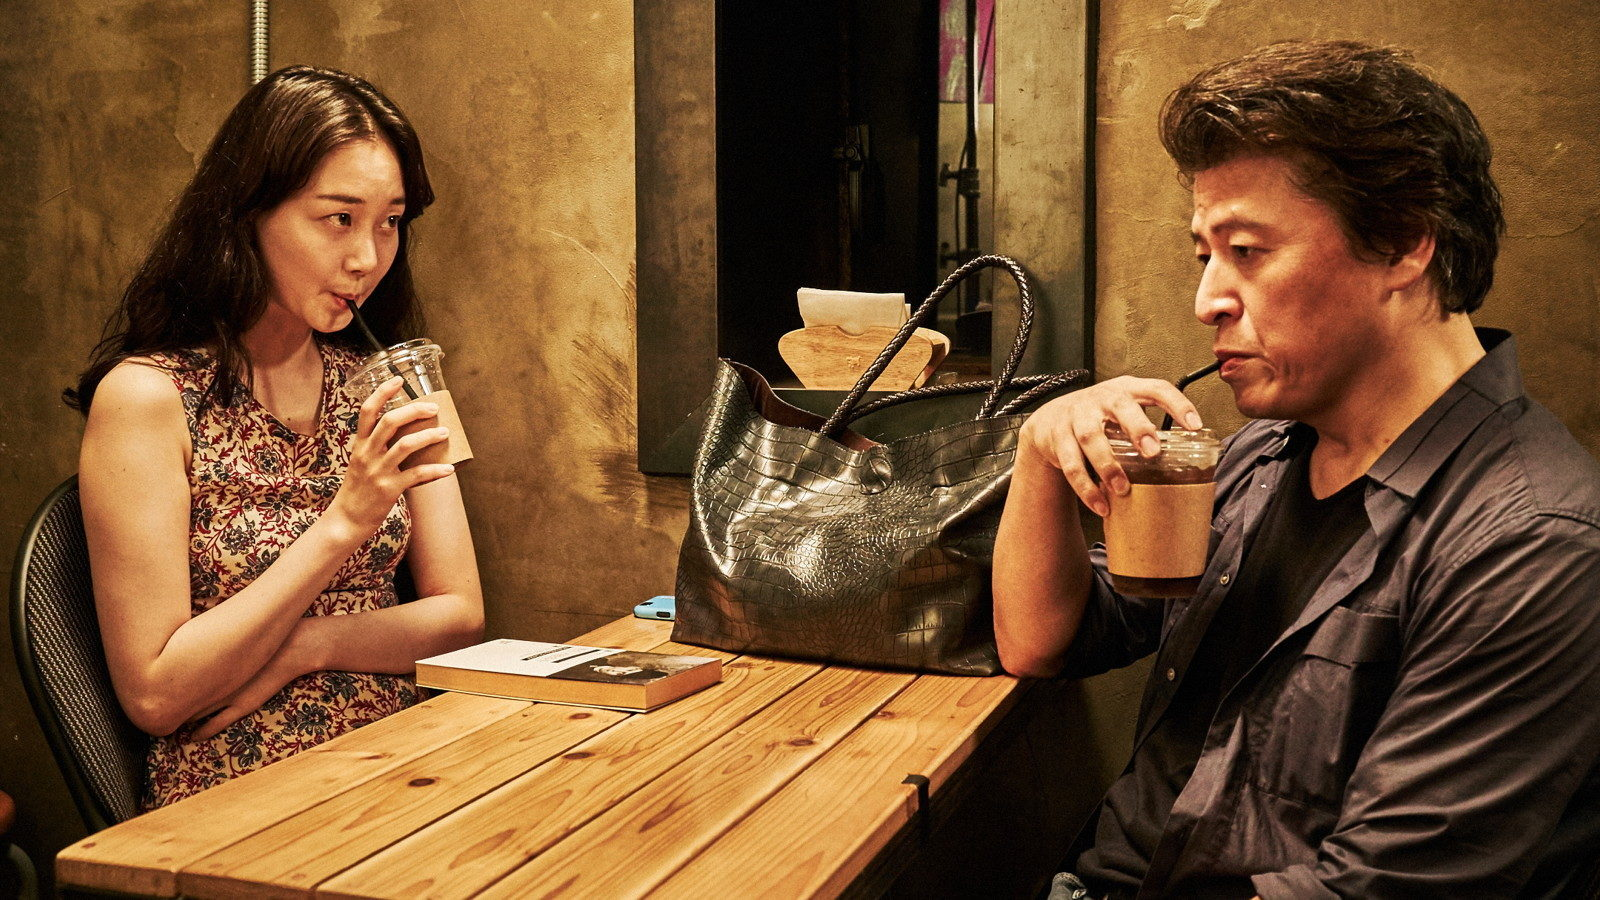 'Yourself And Yours' de Hong Sang-soo : la flamme amnésique de l'amour